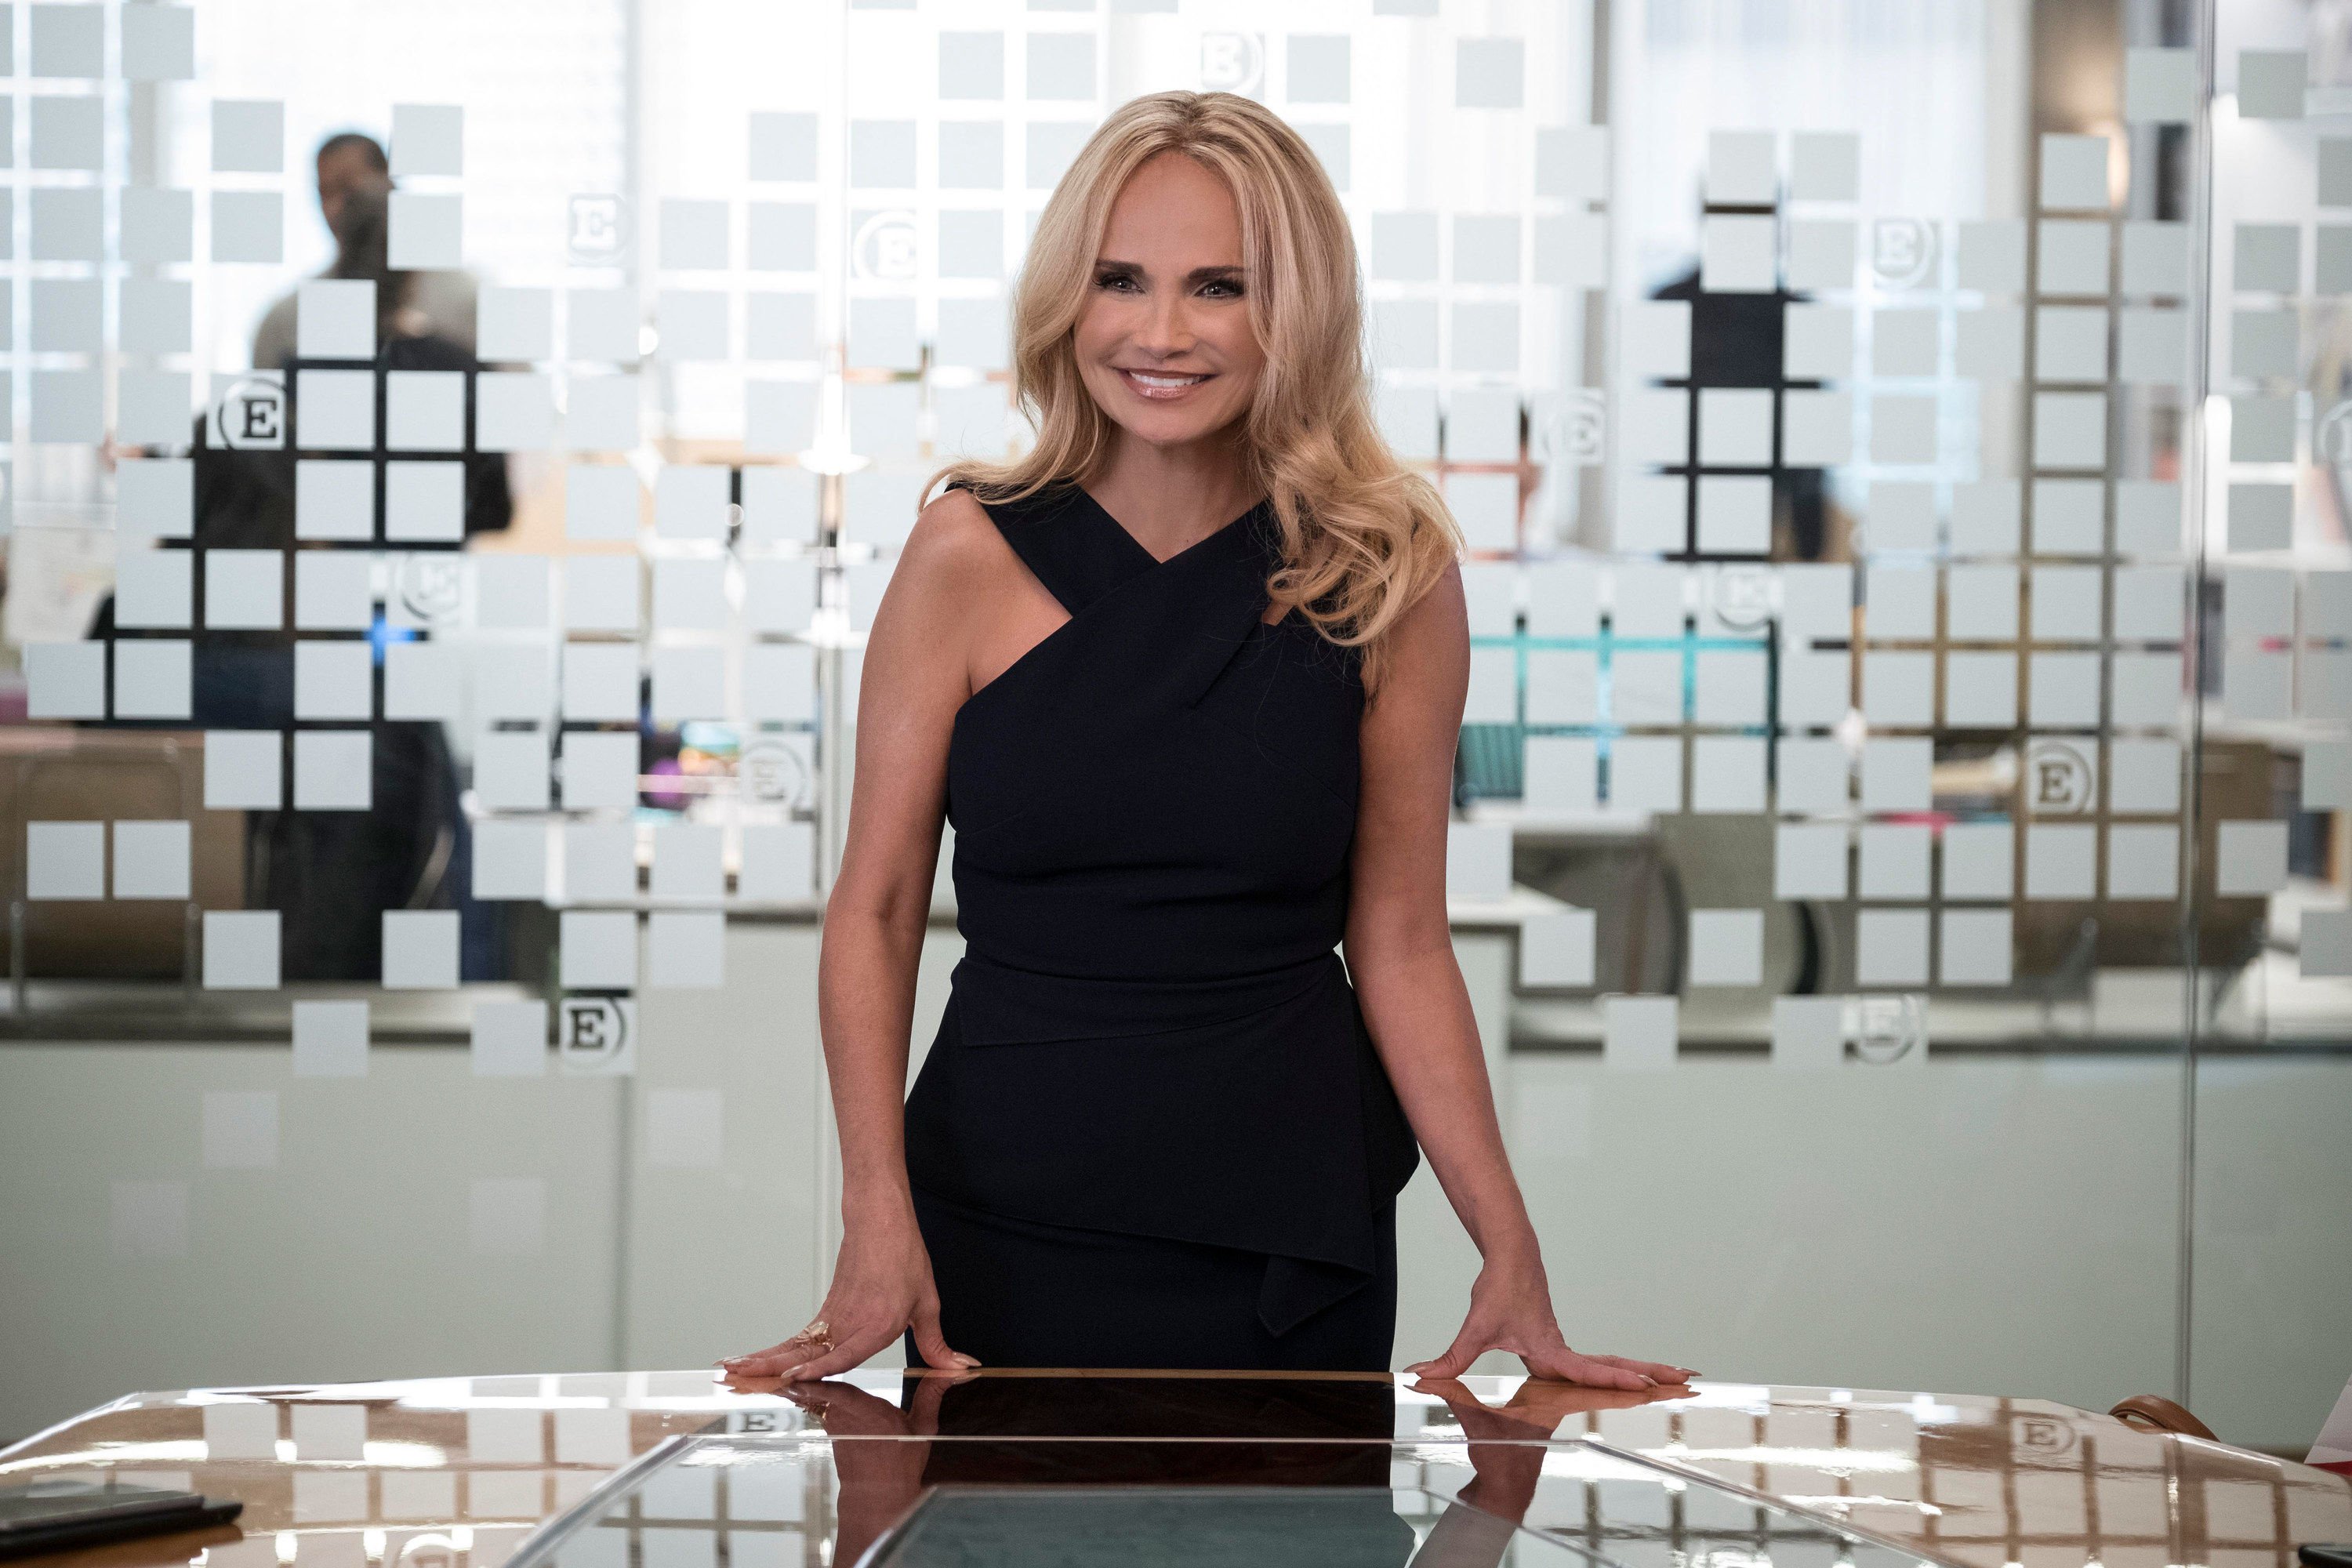 Kristin Chenoweth's standing the head of a table during her guest appearance on Younger